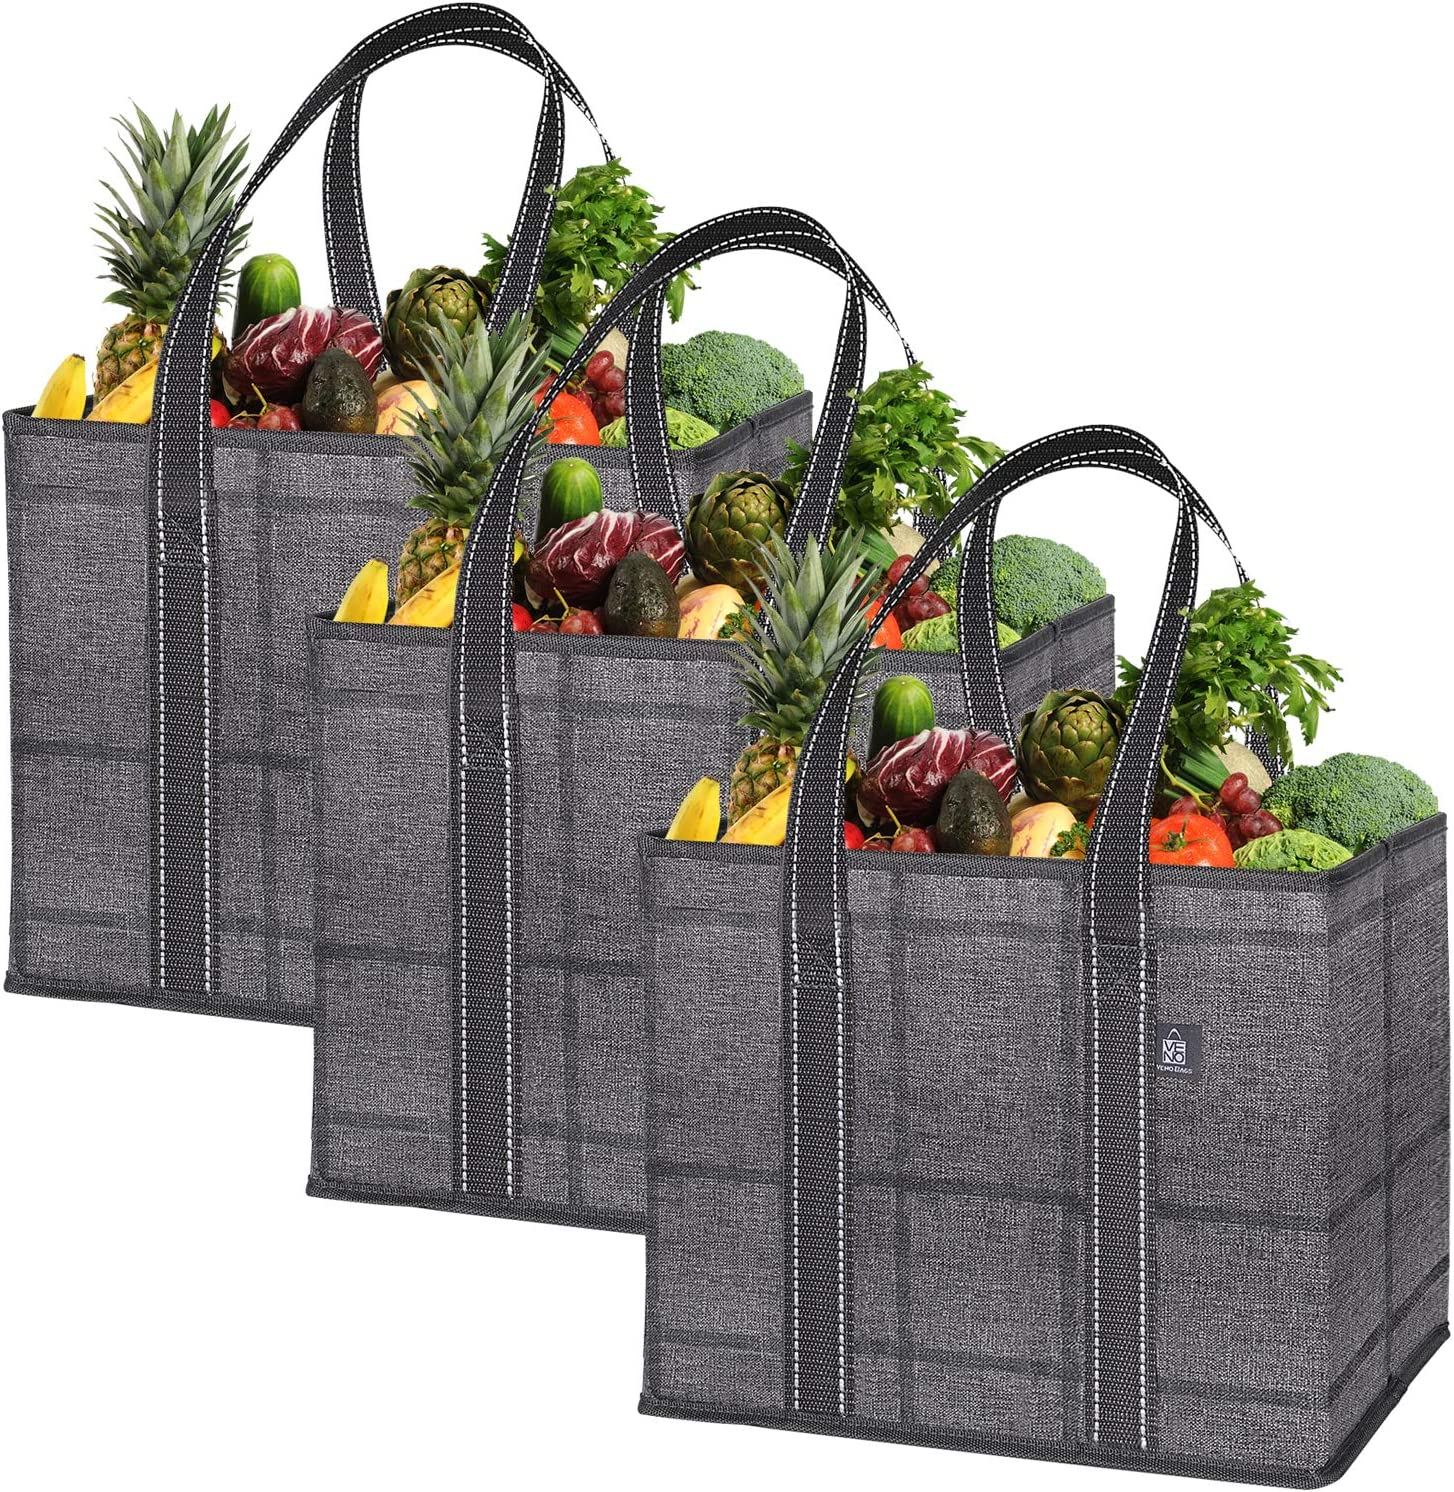 VENO Reusable Grocery Shopping Bags